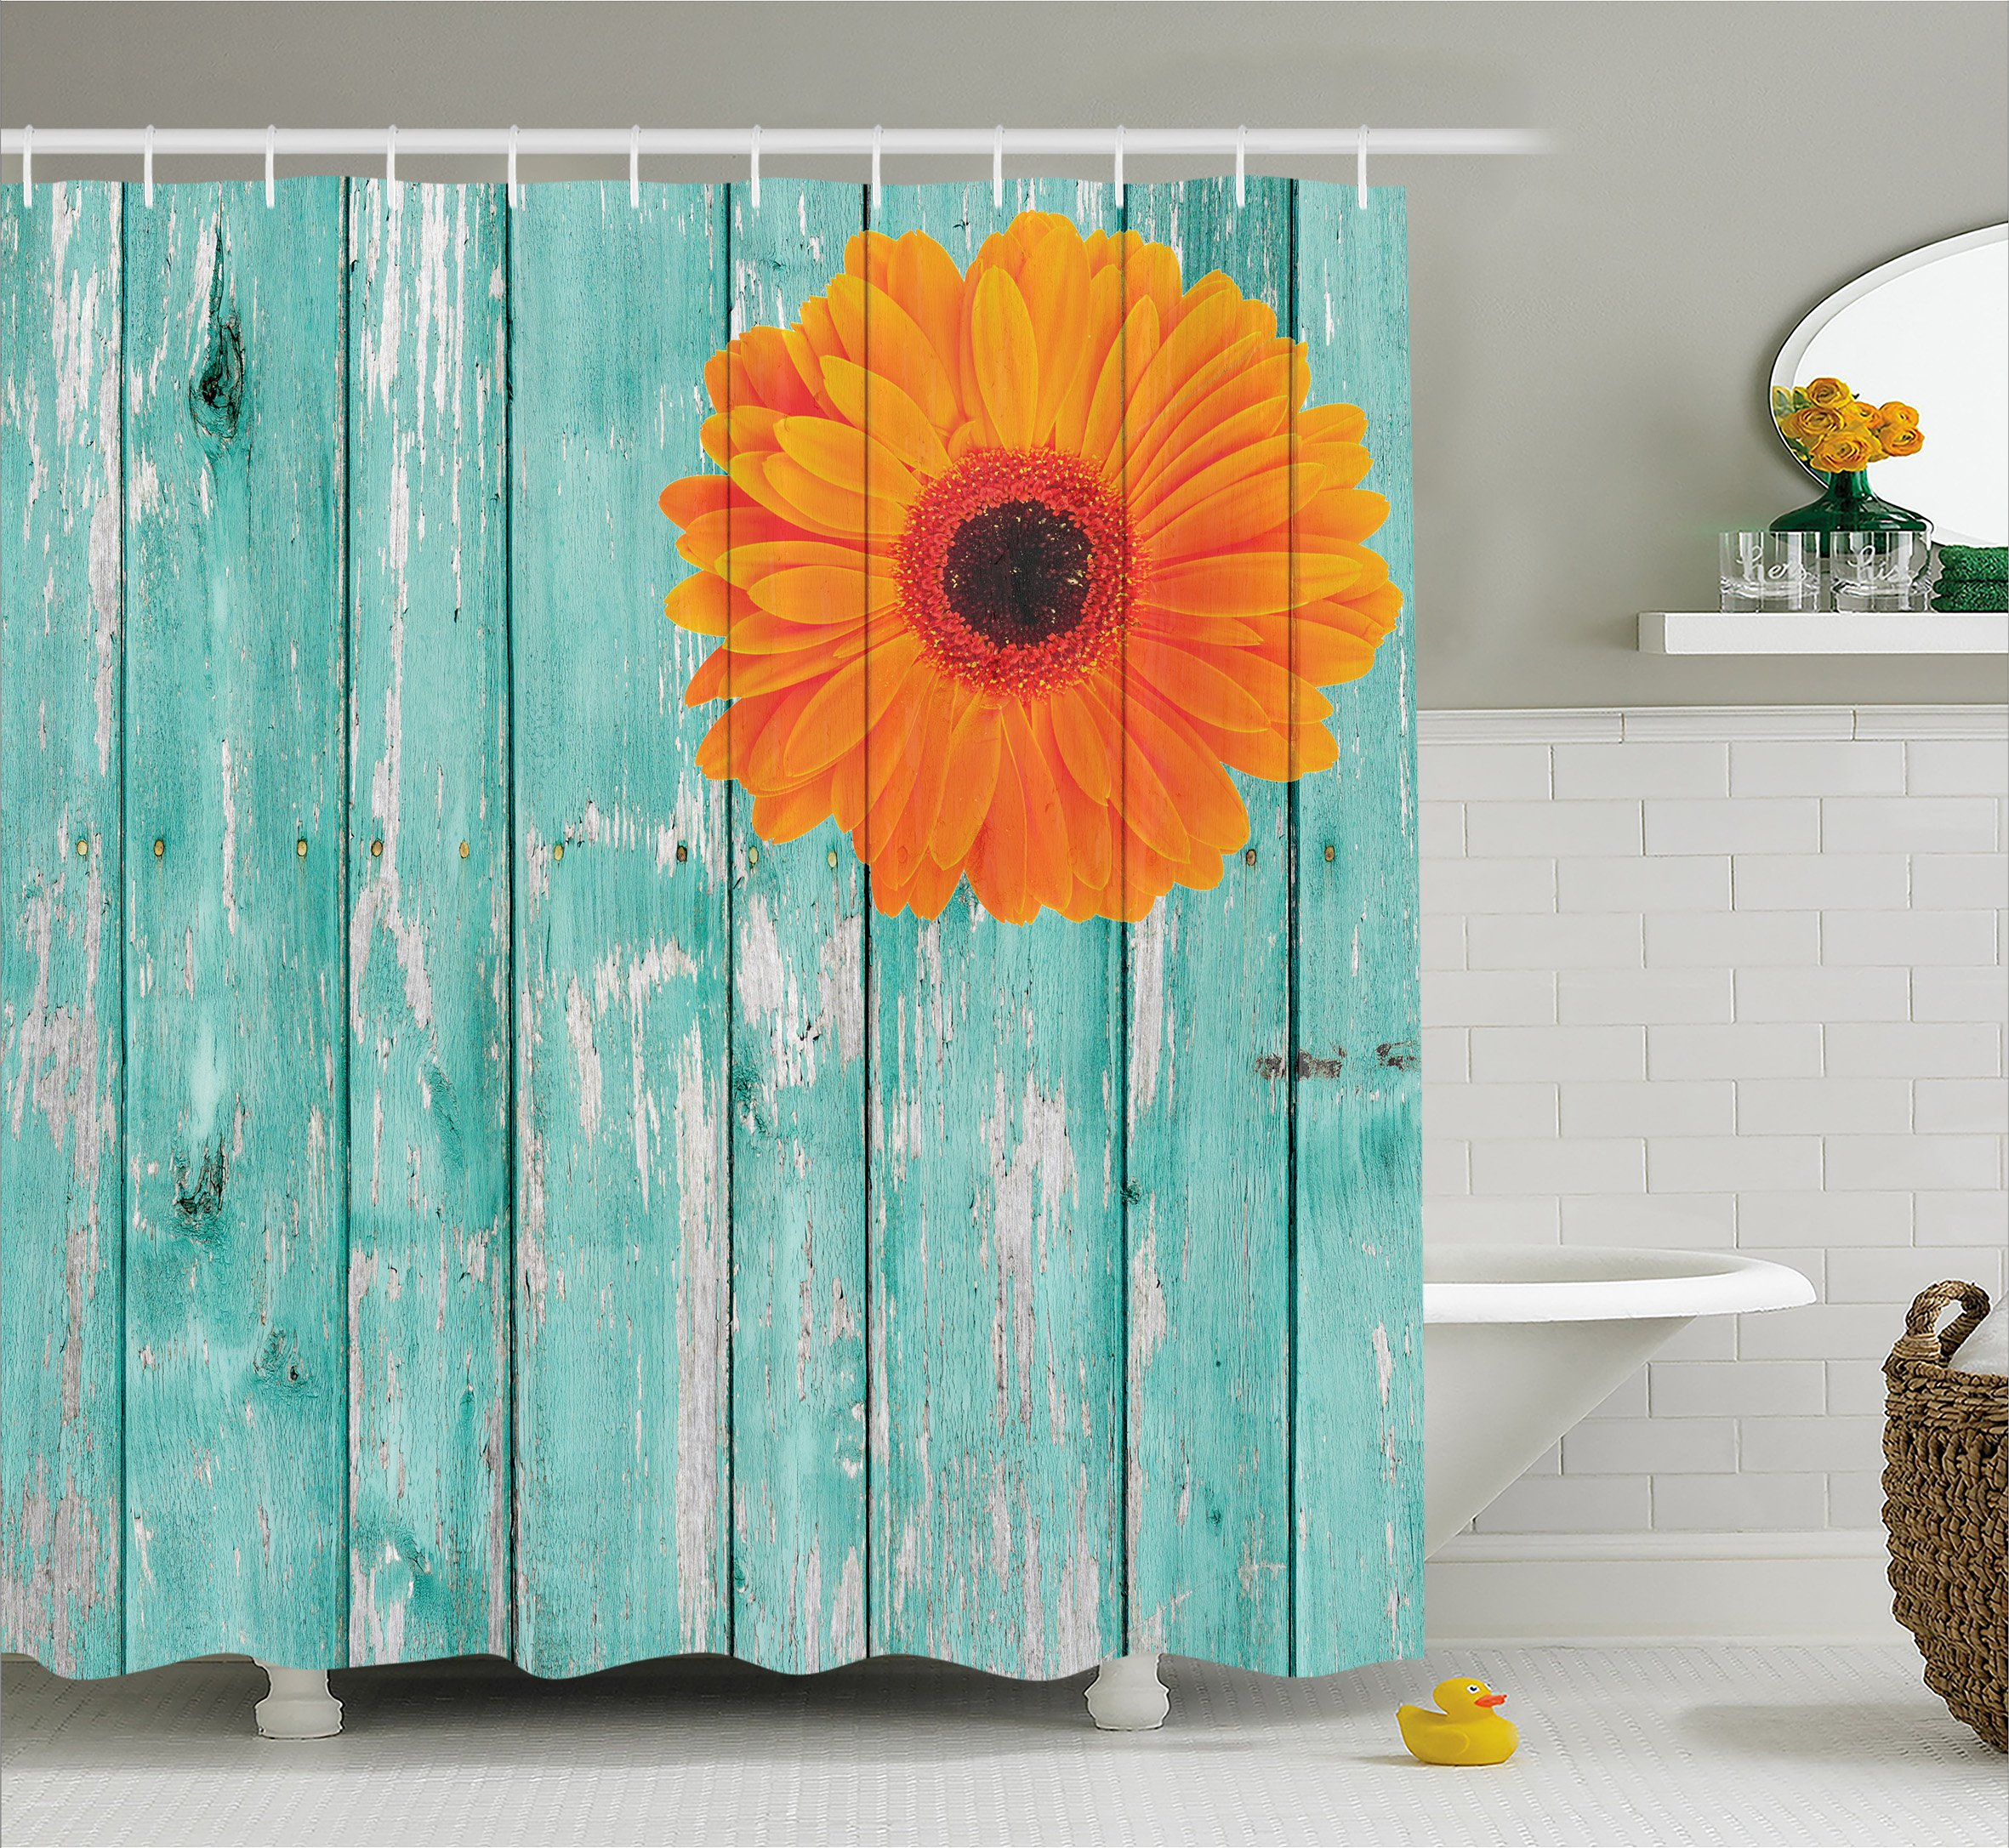 Ambesonne Rustic Barn Decor Shower Curtain Set, Daisy on Vintage Wood Barn Fence Picture Fresh Gerbera Flower Grunge Artsy Print, Bathroom Accessories, Polyester Fabric, 75 Inches Long, Mint Orange - 75 INCHES LONG x 69 INCHES WIDE - High quality Turkish fabric, No liner needed, Includes free hooks MACHINE WASHABLE - Vibrant colors, Clear image, No fading, No dyes harming health of your family WATERPROOF - Mold, mildew and soap resistant, Non vinyl, Non PEVA, Environmentally friendly - shower-curtains, bathroom-linens, bathroom - A1689j ffUL -